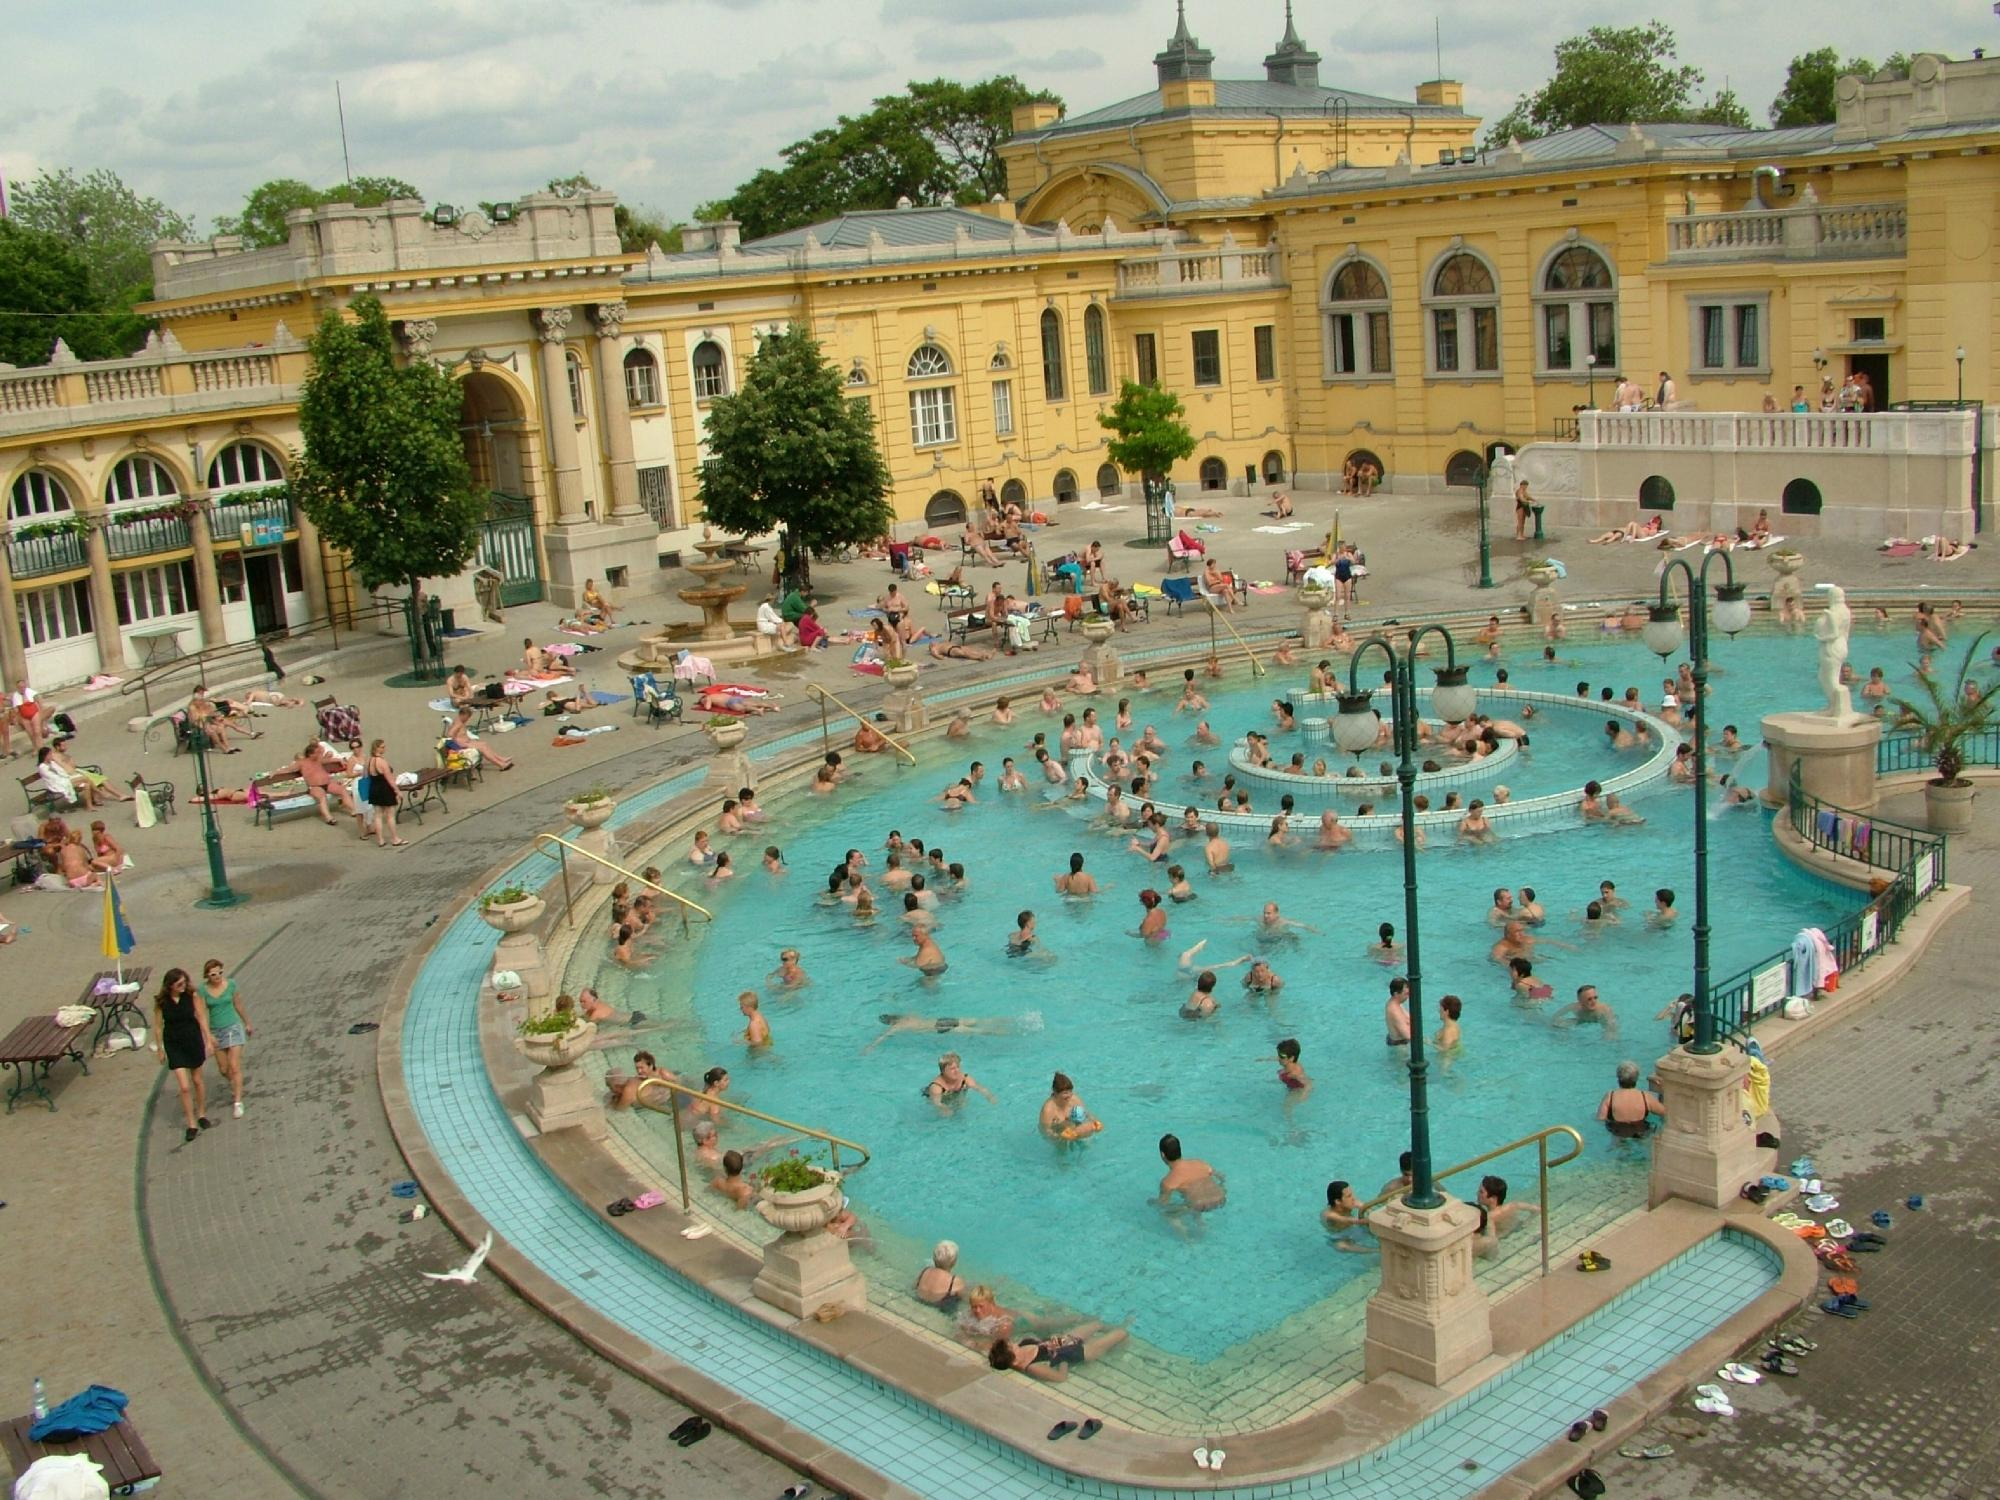 Bath Images szechenyi baths and pool (budapest, hungary): top tips before you